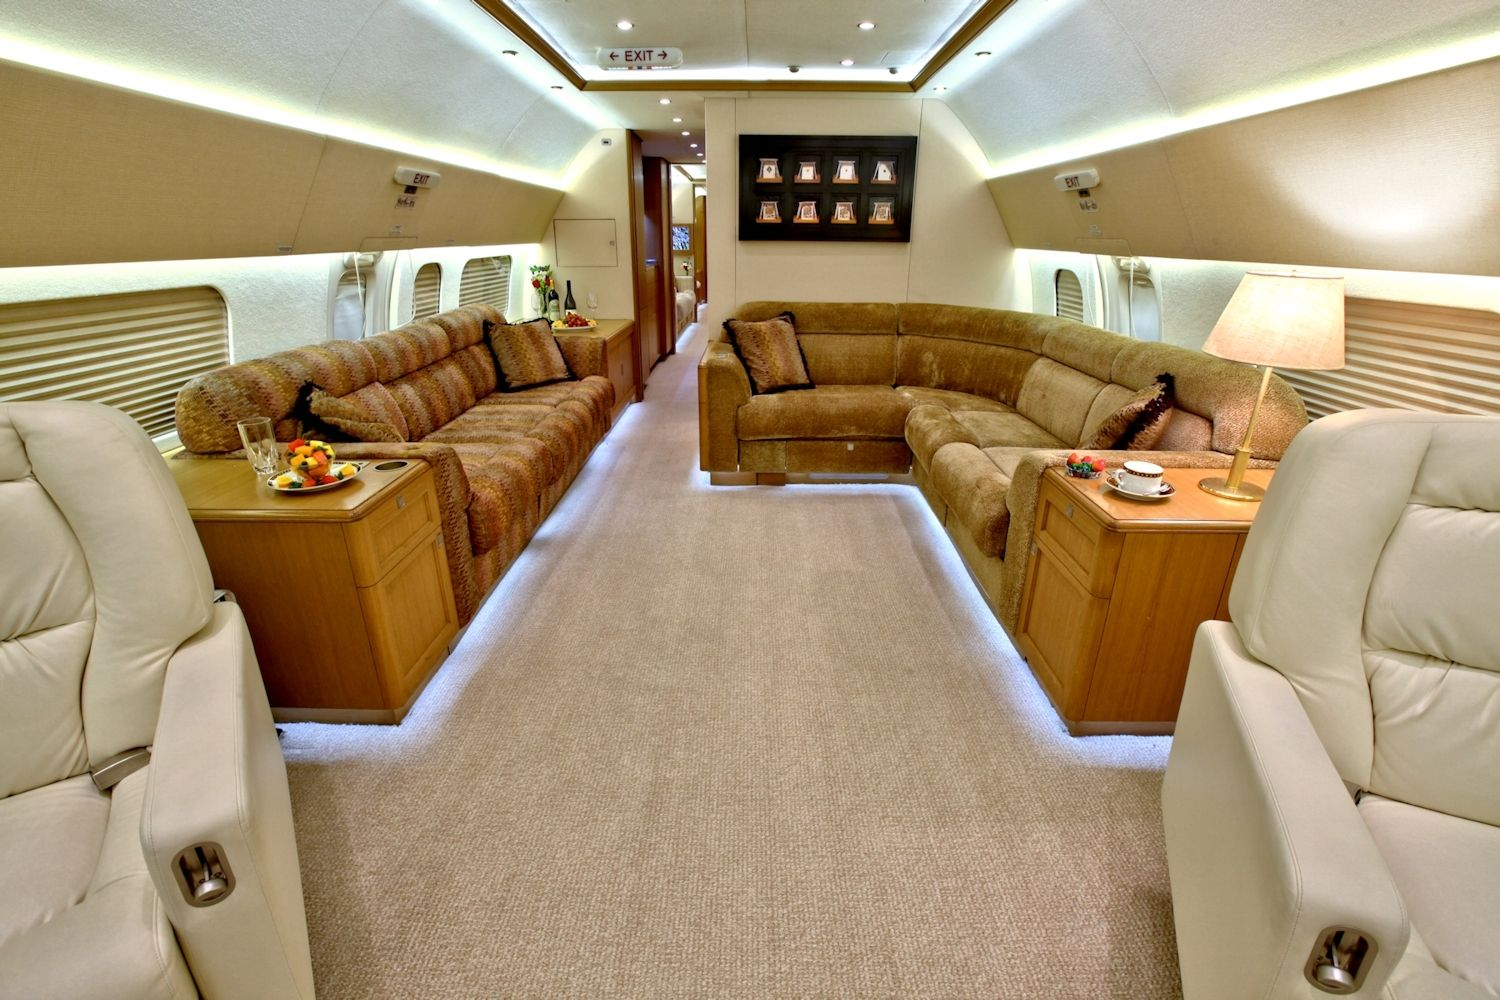 1999 Boeing Business Jet Boeing business jet, Private